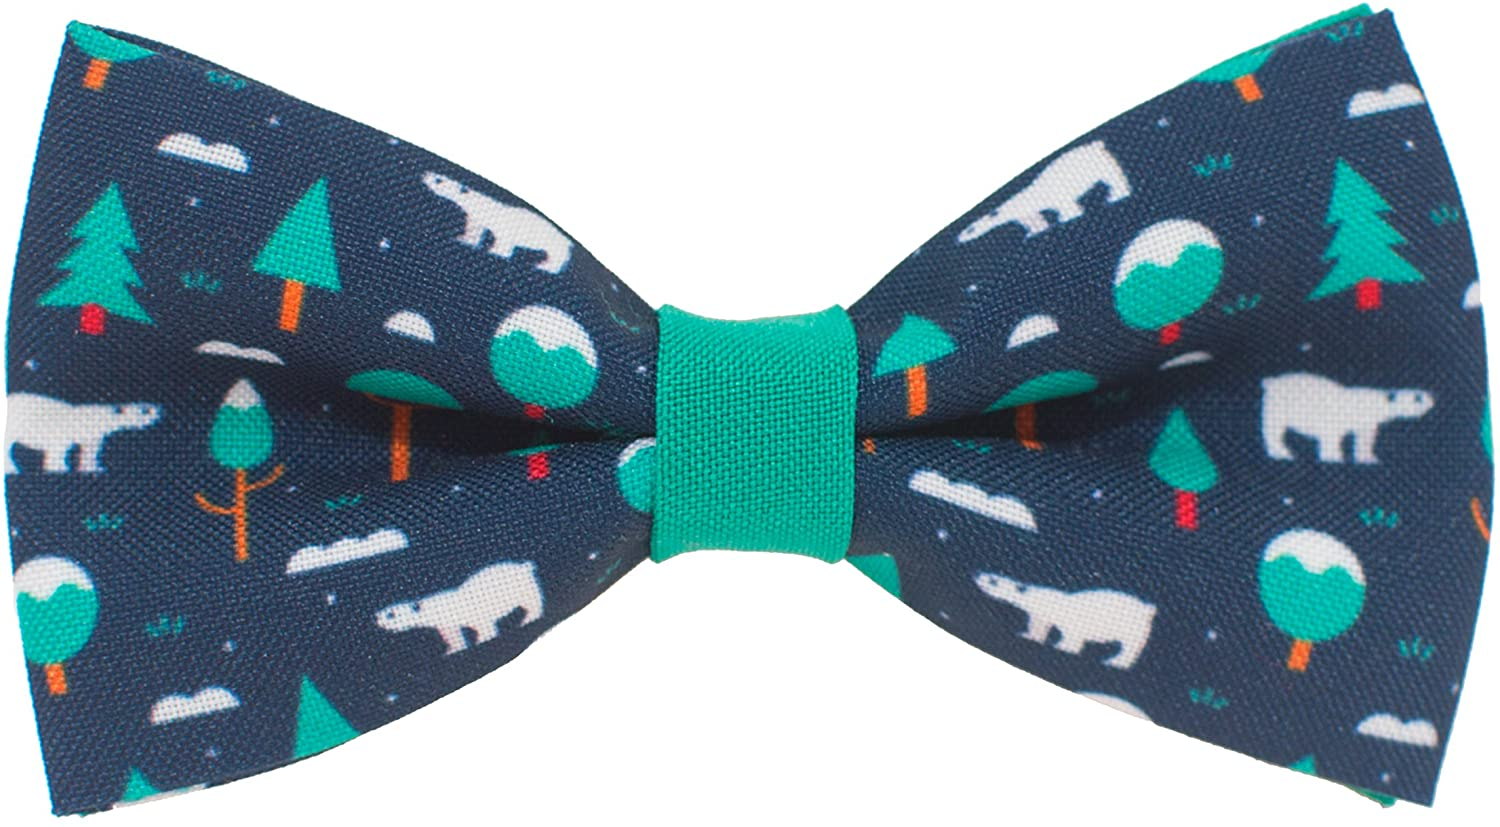 Christmas Bow Ties New Year patterns pre-tied for kids children teens boys, by Bow Tie House